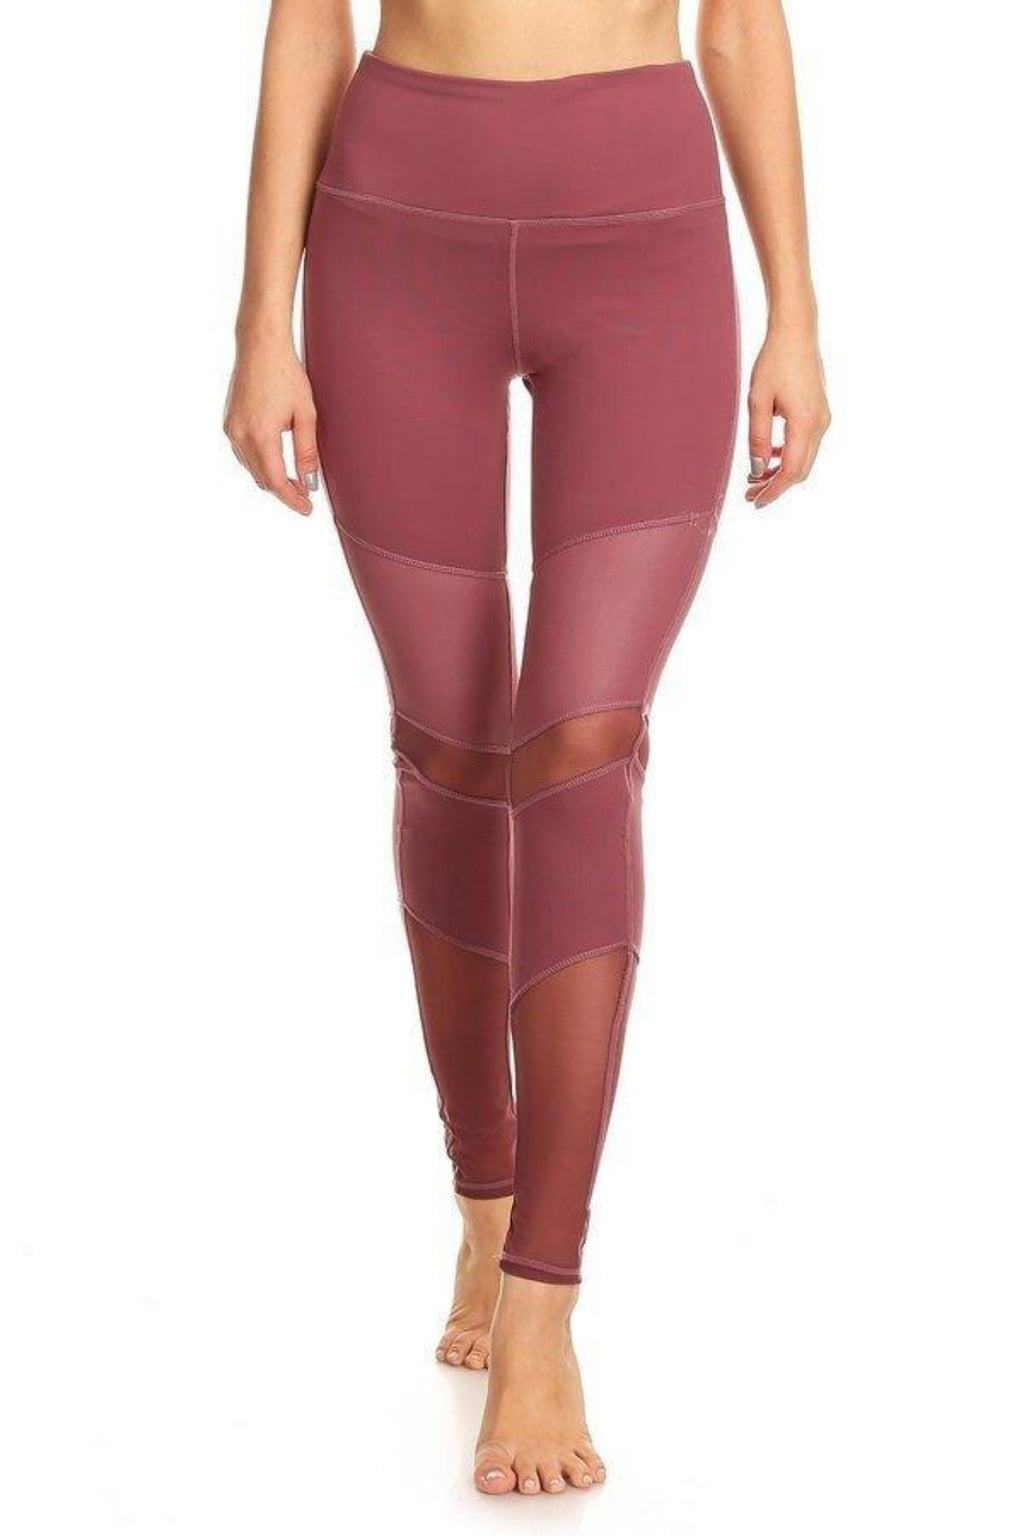 Peru Activewear Mesh Leggings- Mauve Clothing Fair Shade S Mauve 75% cotton, 12% Rayon, 13% Spandex